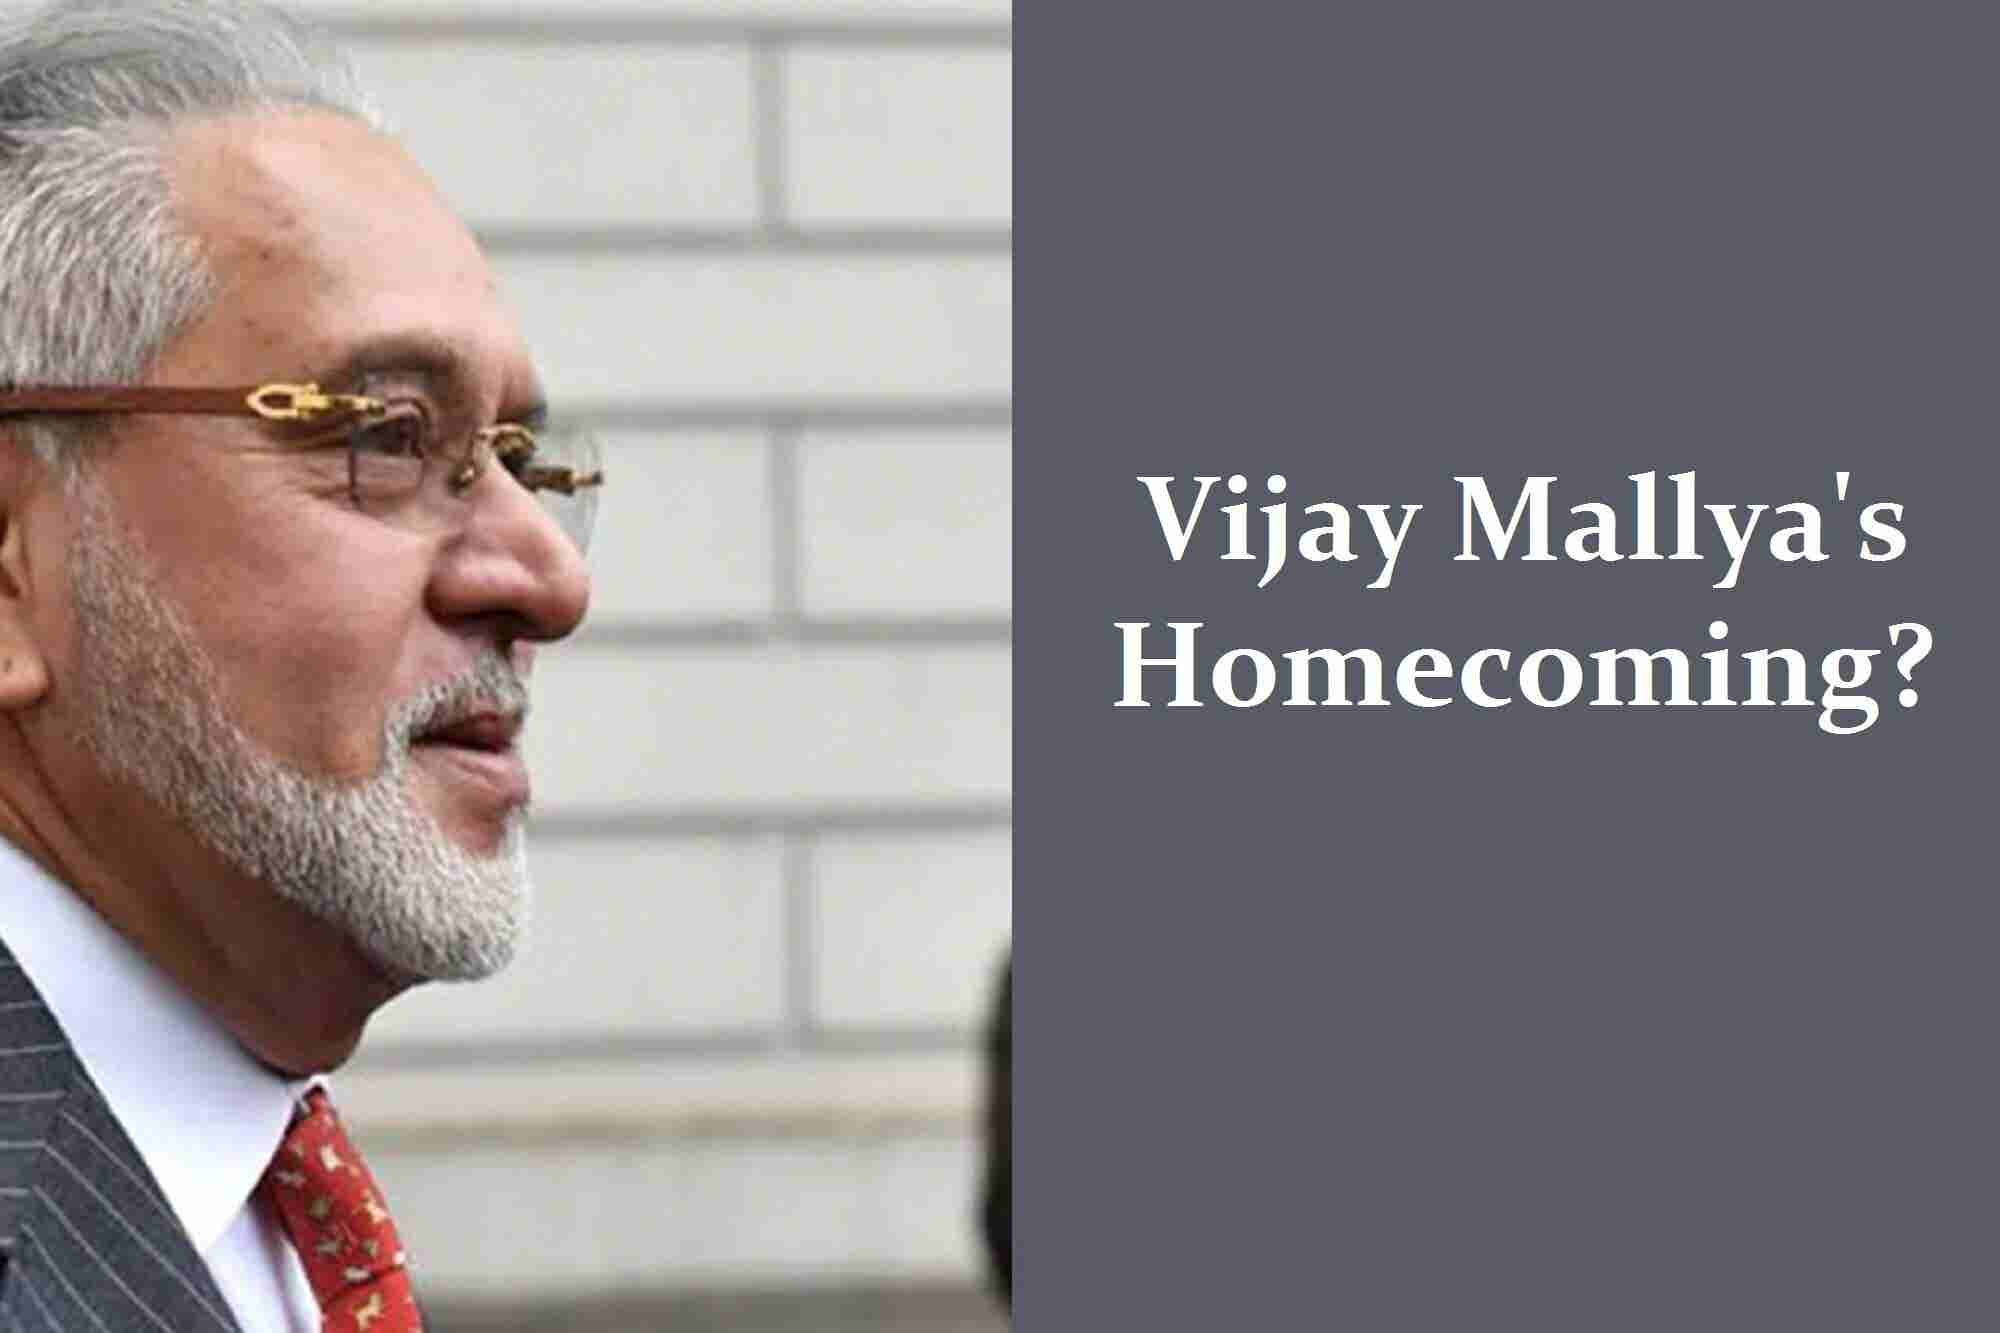 Beyond India: Vijay Mallya to be Extradited & Johnson & Johnson Shows Will to Pay Compensation